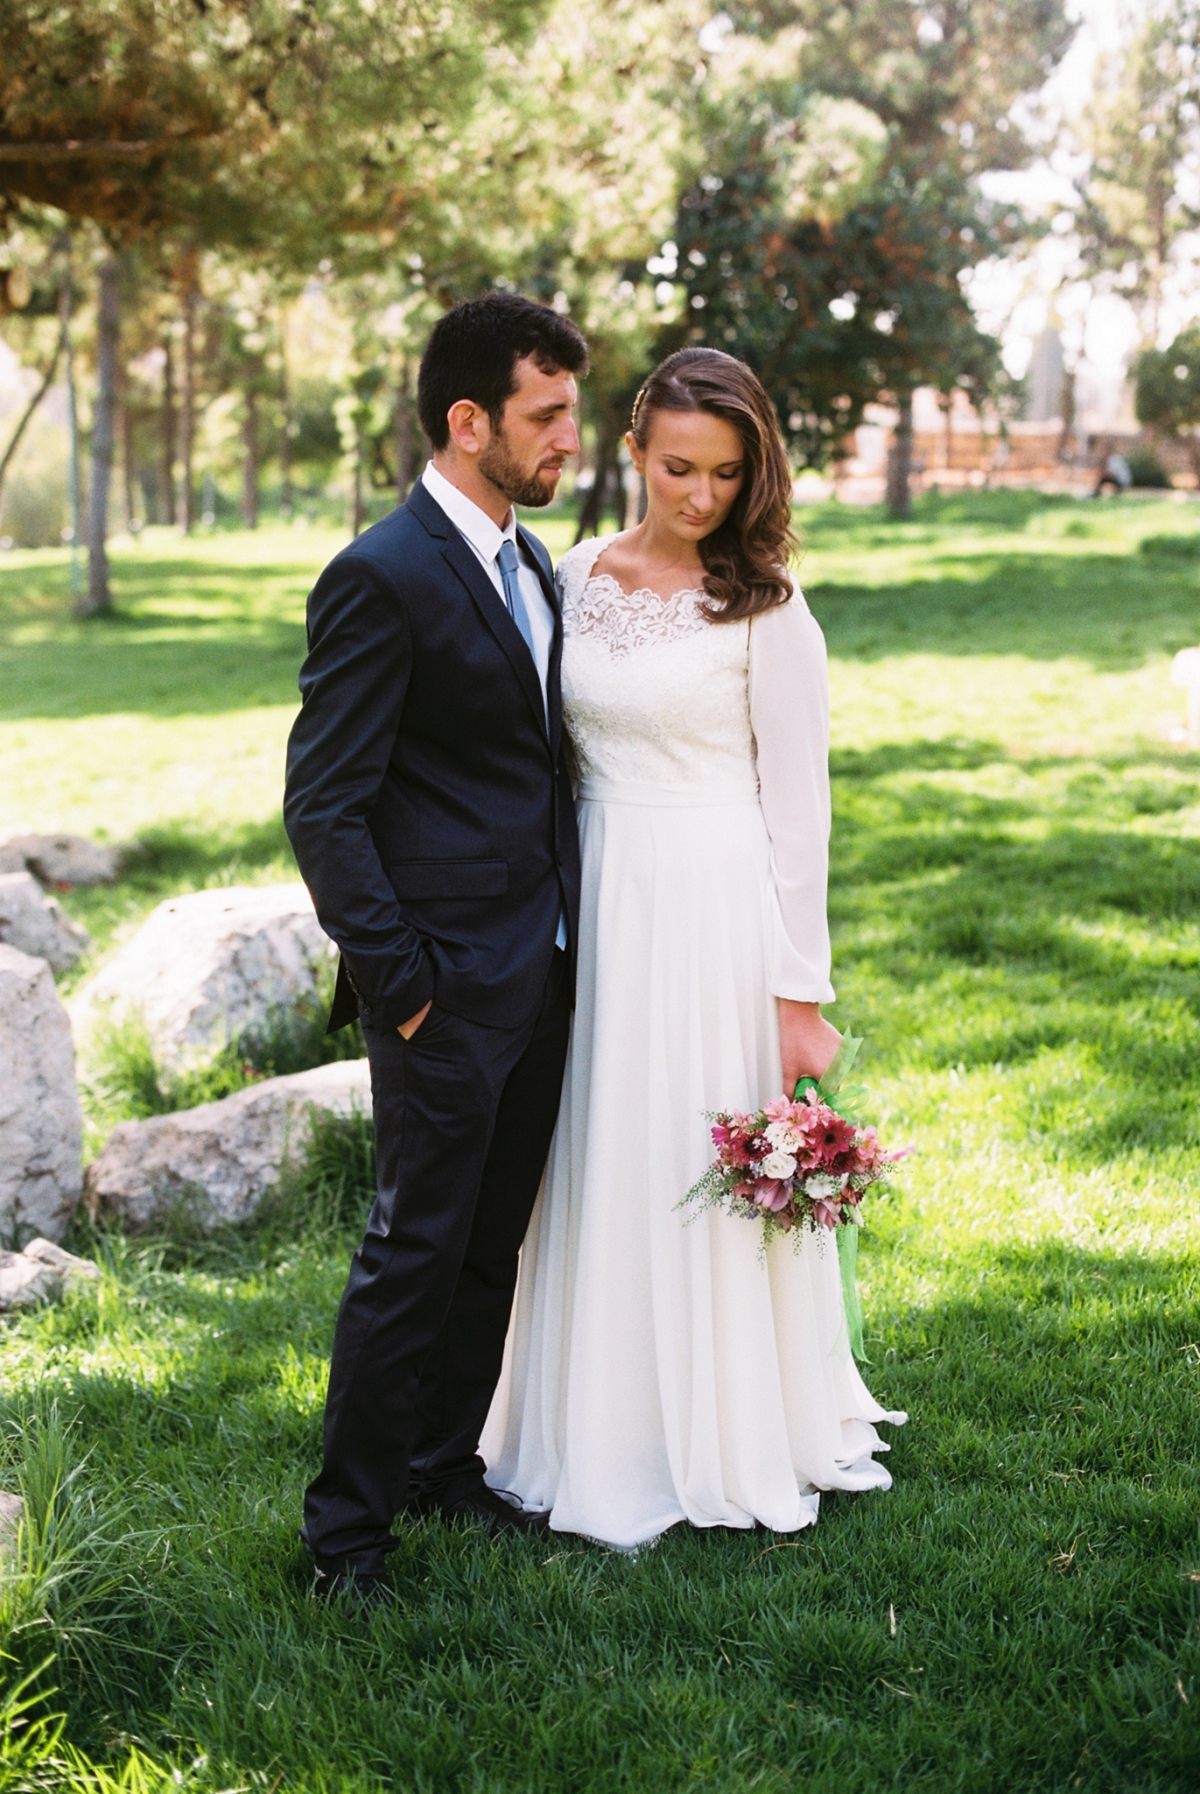 piccolino-wedding-jerusalem-israel-galia-and-michael-sigala-photography_0013